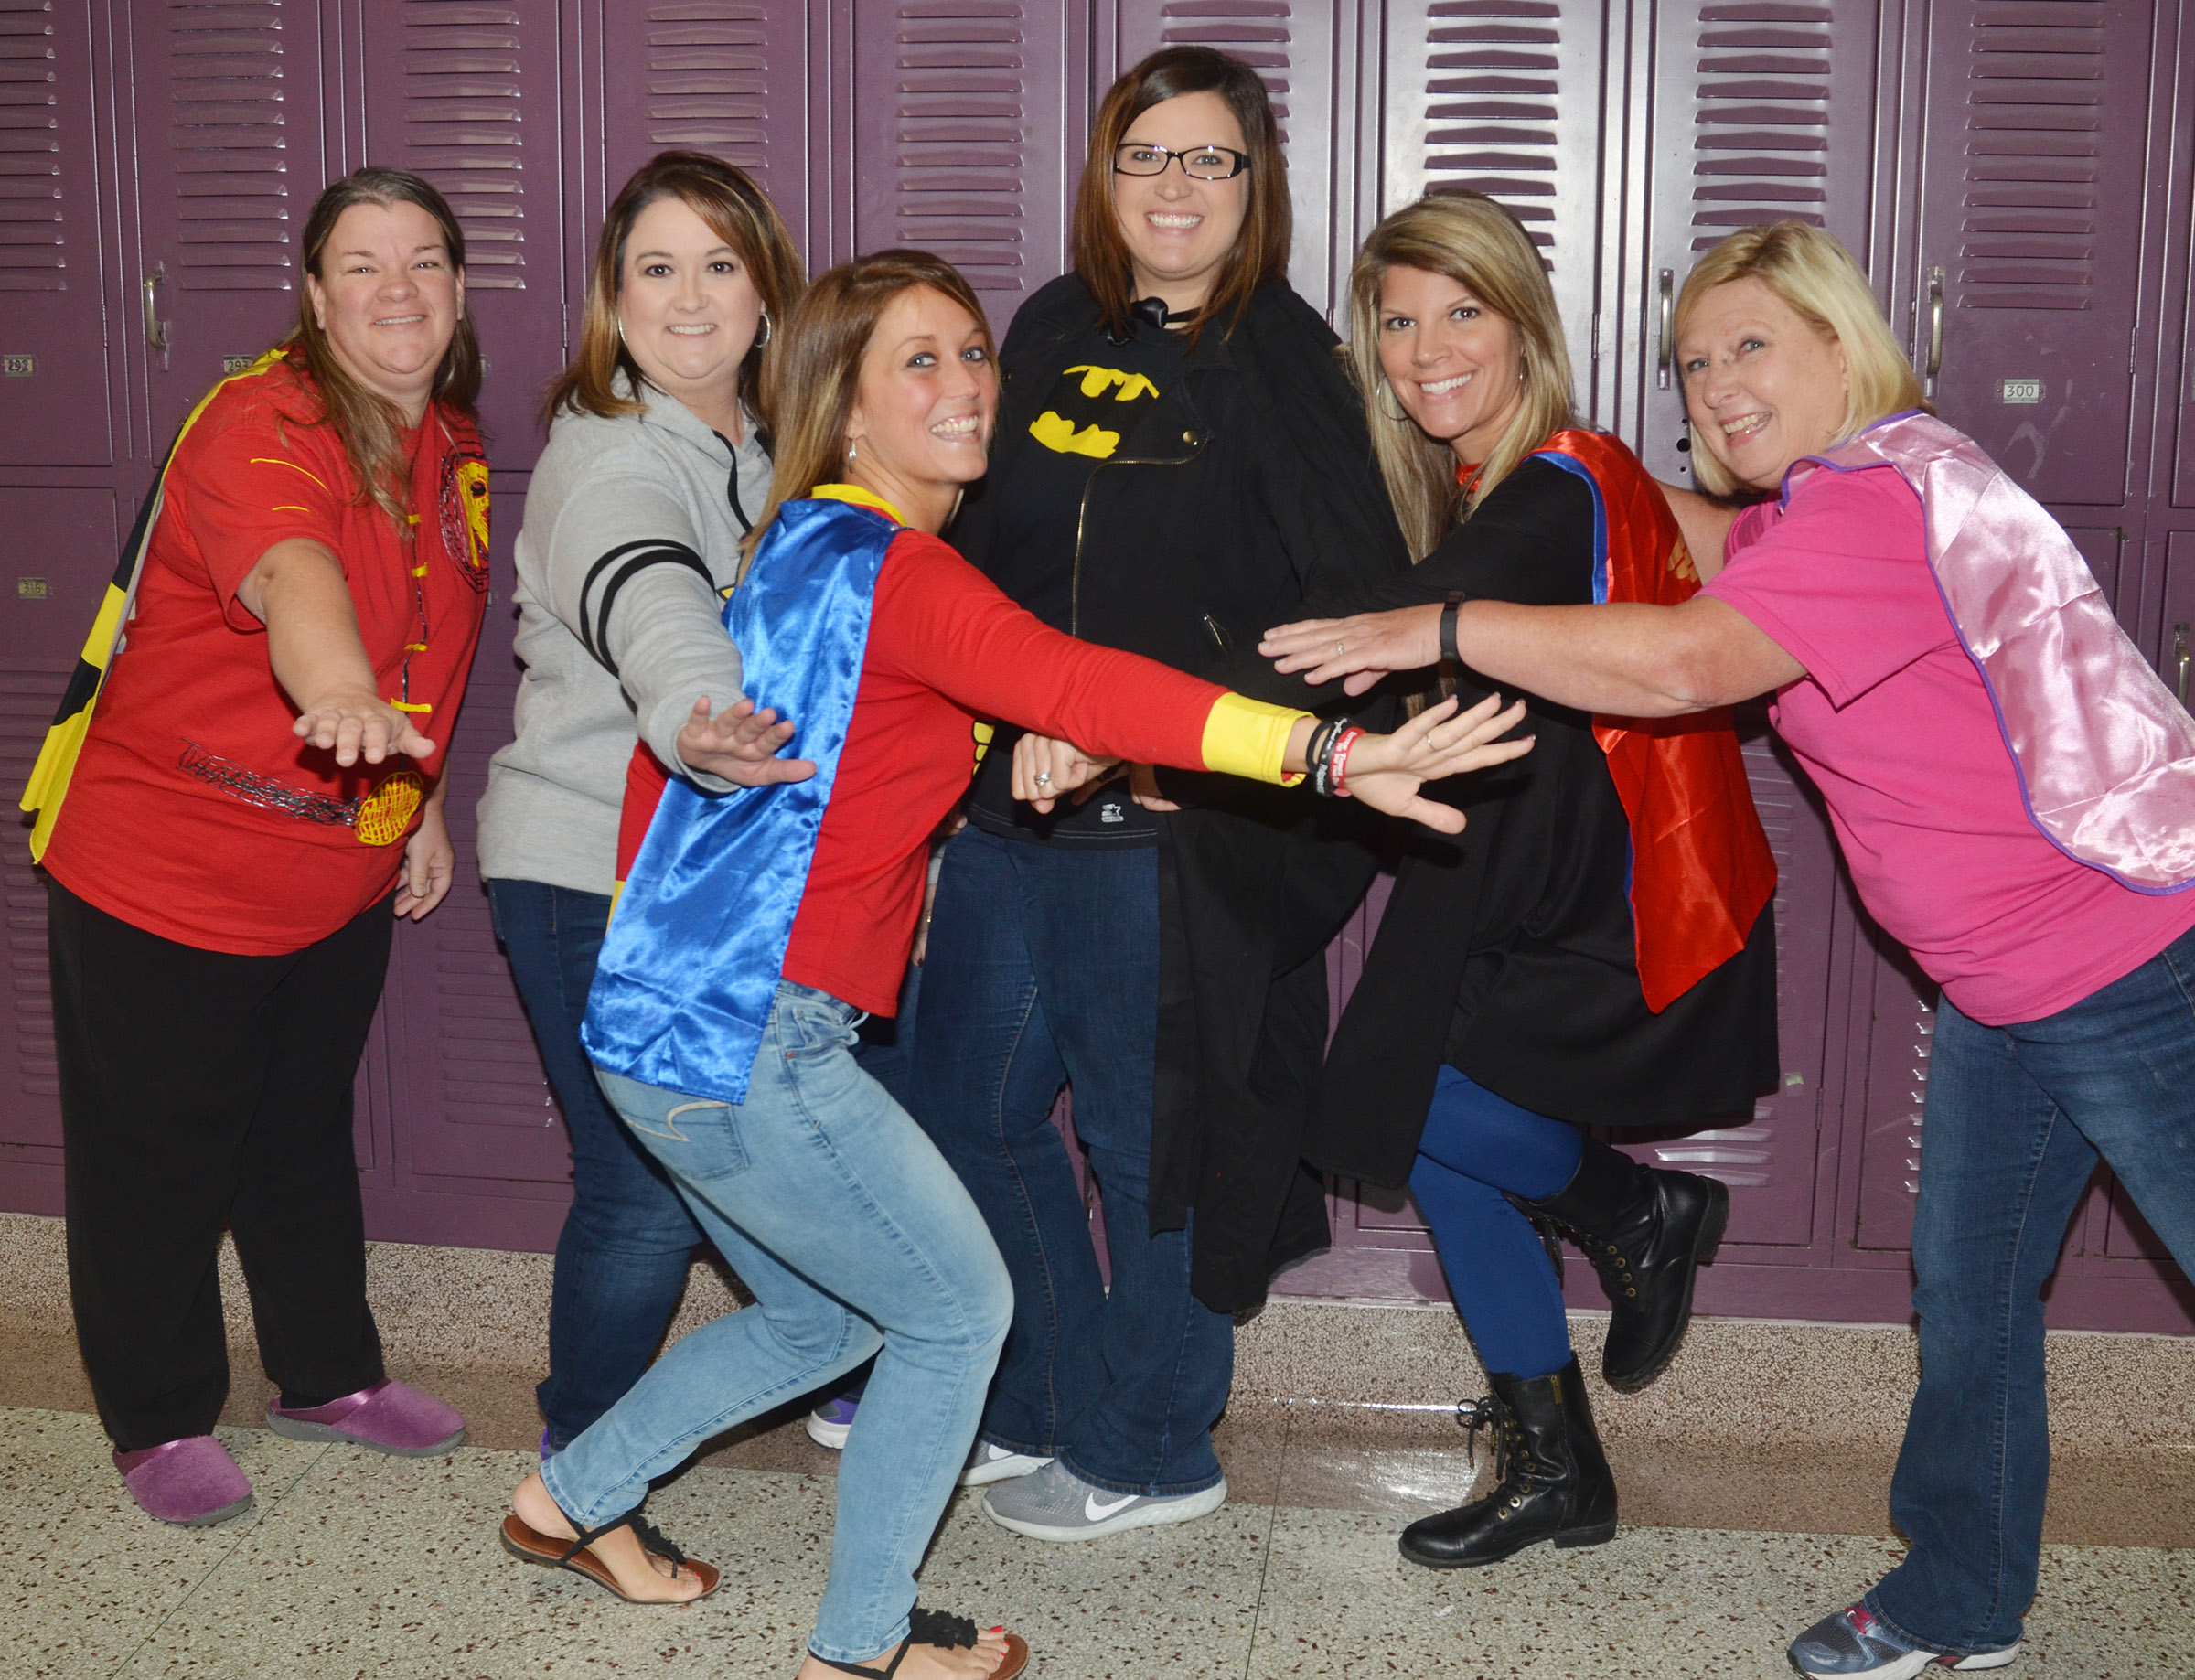 CMS teachers and administrators, from left, Robin Johnson, Amy Knifley, Natalia Warren, Robbilyn Speer, Andrea Gribbins and Jan Speer dress as superheroes for Real Heroes Don't Do Drugs Day.